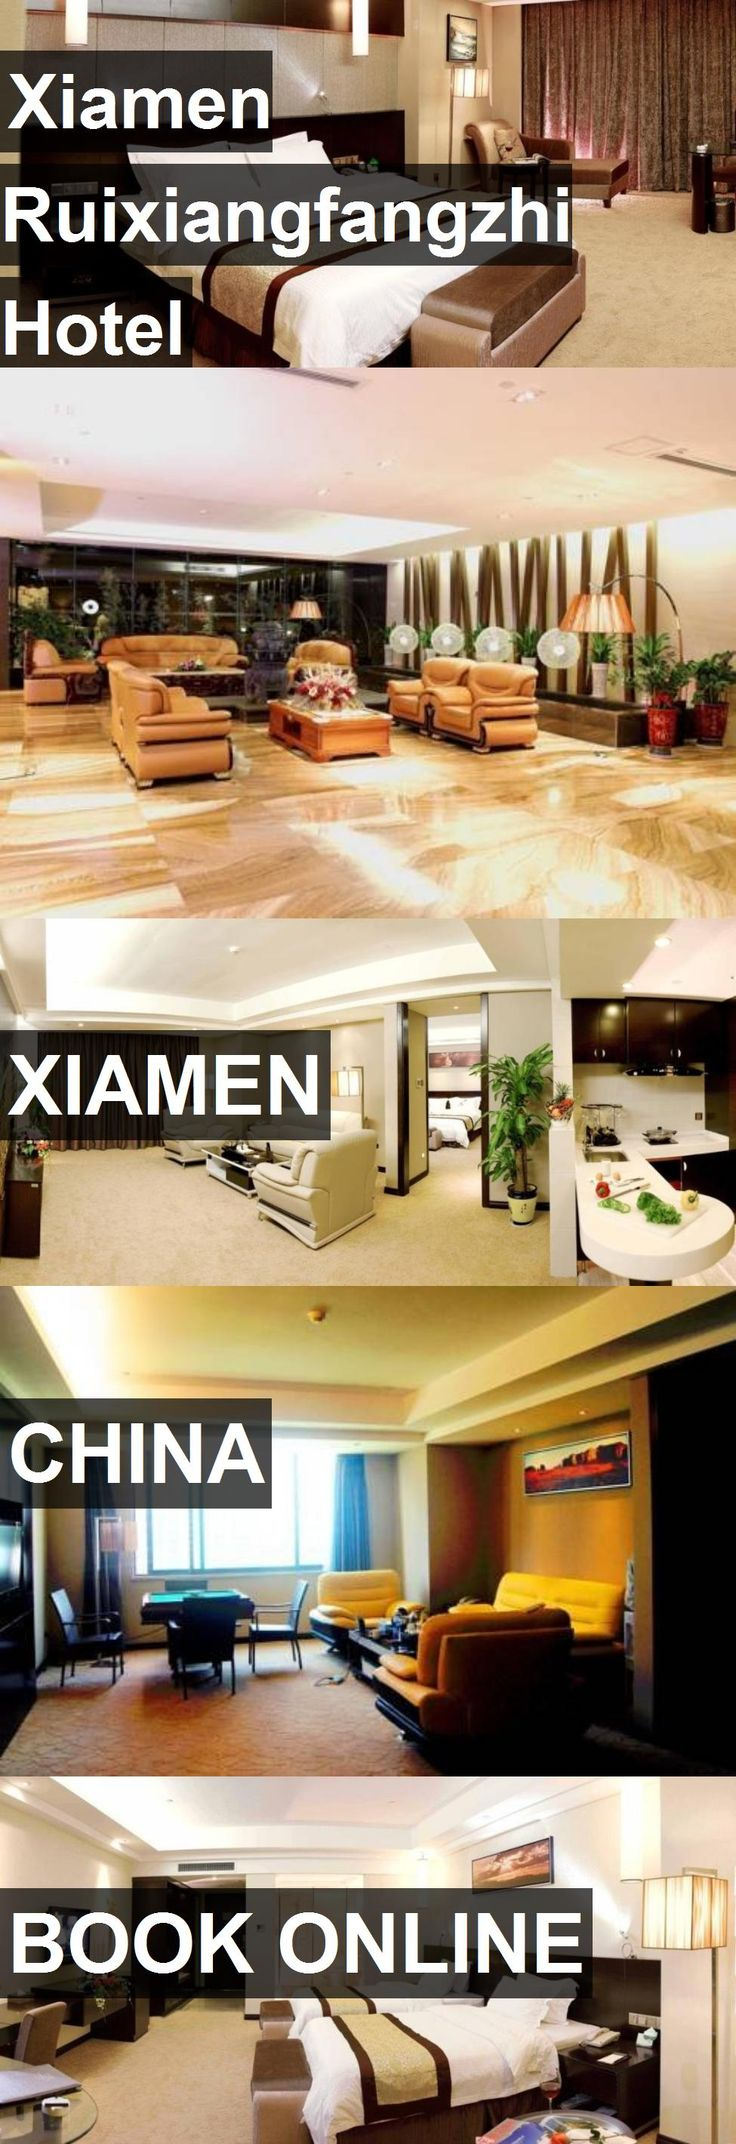 Hotel Xiamen Ruixiangfangzhi Hotel in Xiamen, China. For more information, photos, reviews and best prices please follow the link. #China #Xiamen #XiamenRuixiangfangzhiHotel #hotel #travel #vacation